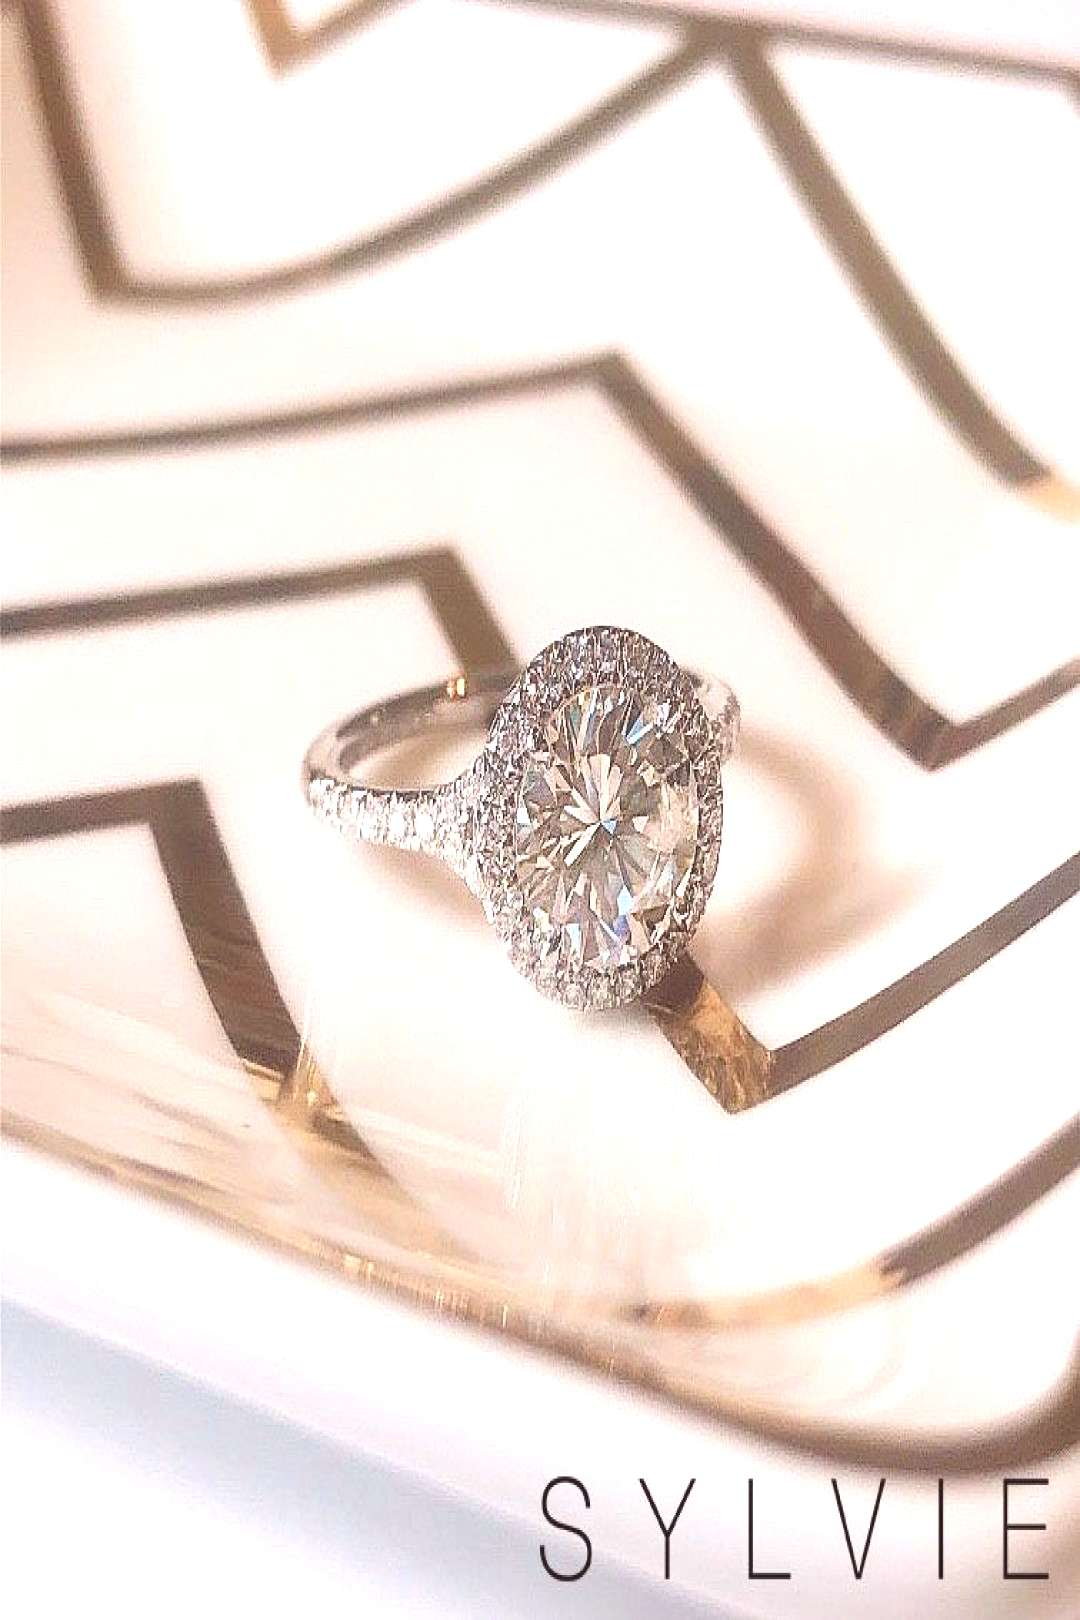 Halo Engagement Ring S1814 Sylvie bride Maxine fell in love with the Alexandra ring but wanted a ro